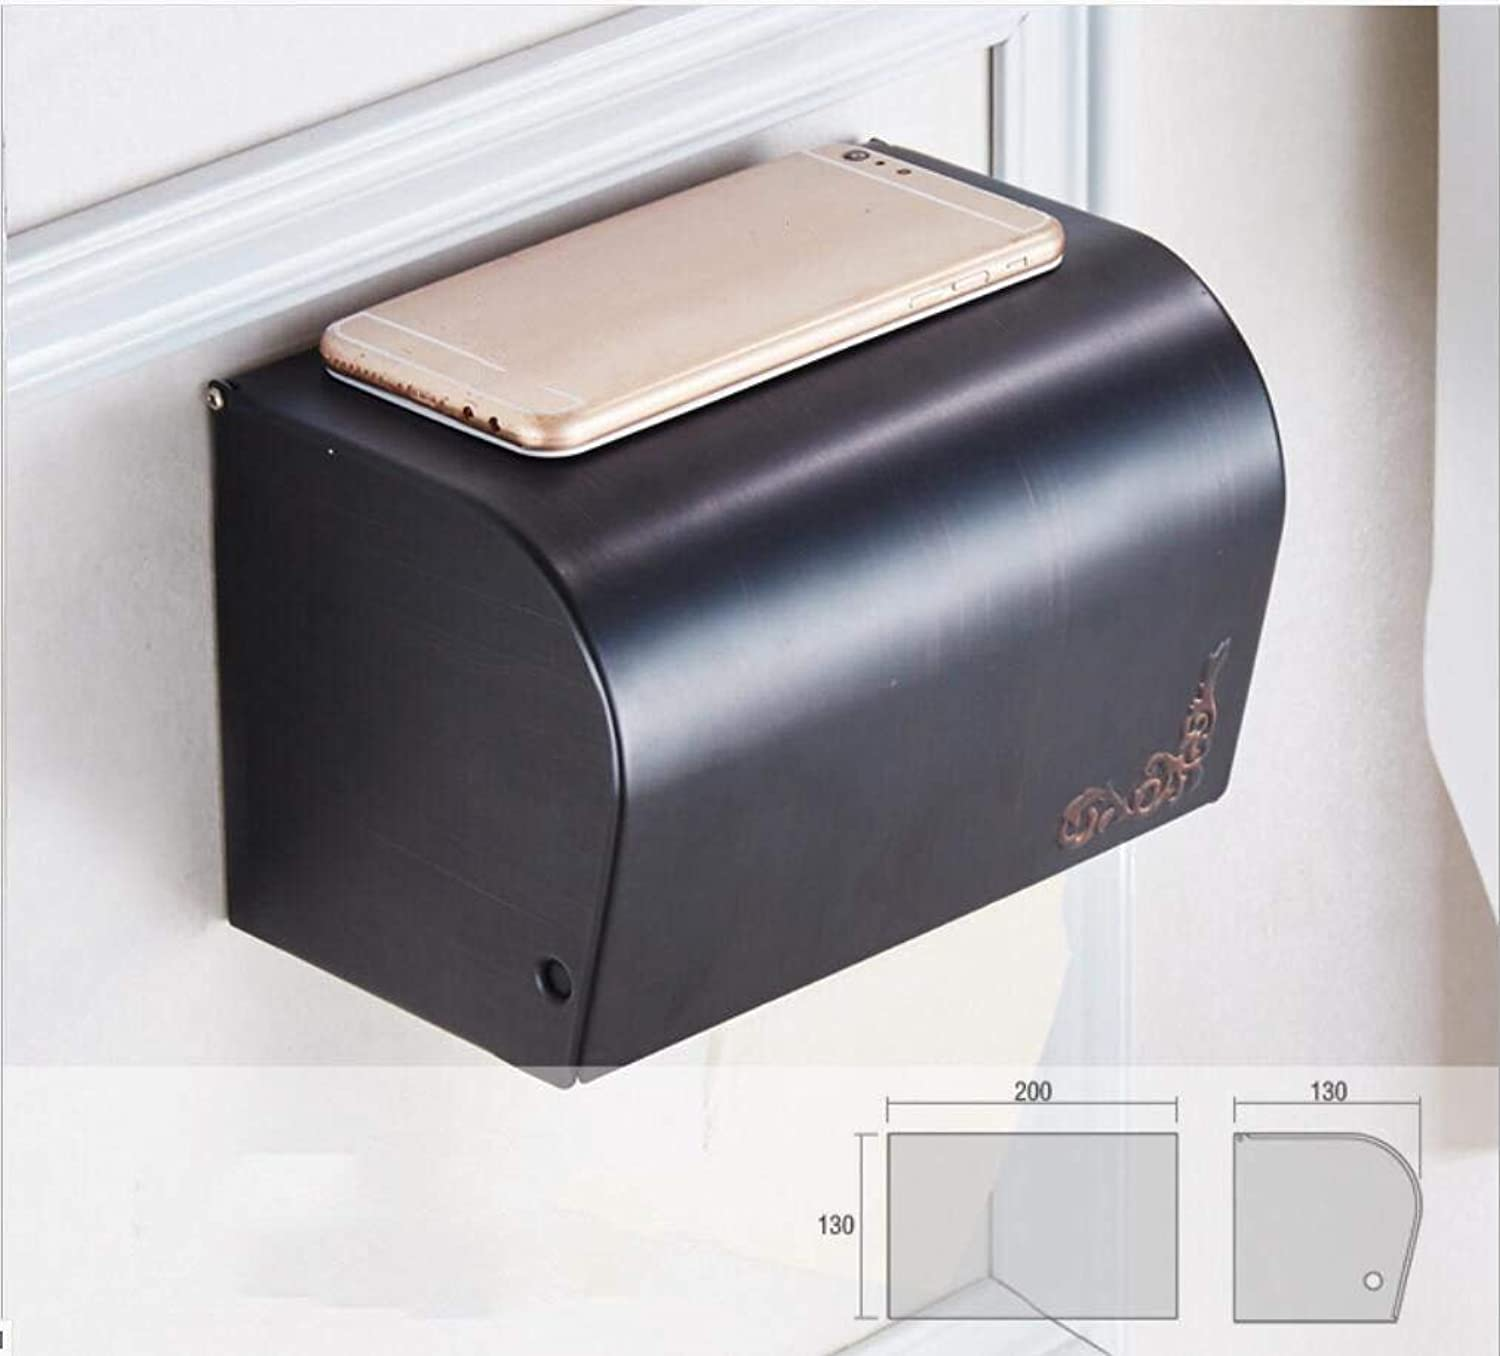 Accessories for Bathroom The Enlargement of Europe All impervious to Black Copper Full Paper Paper Fort Black Bronze Cardboard Seal of roll of Toilet Paper Dry-Towels Framework